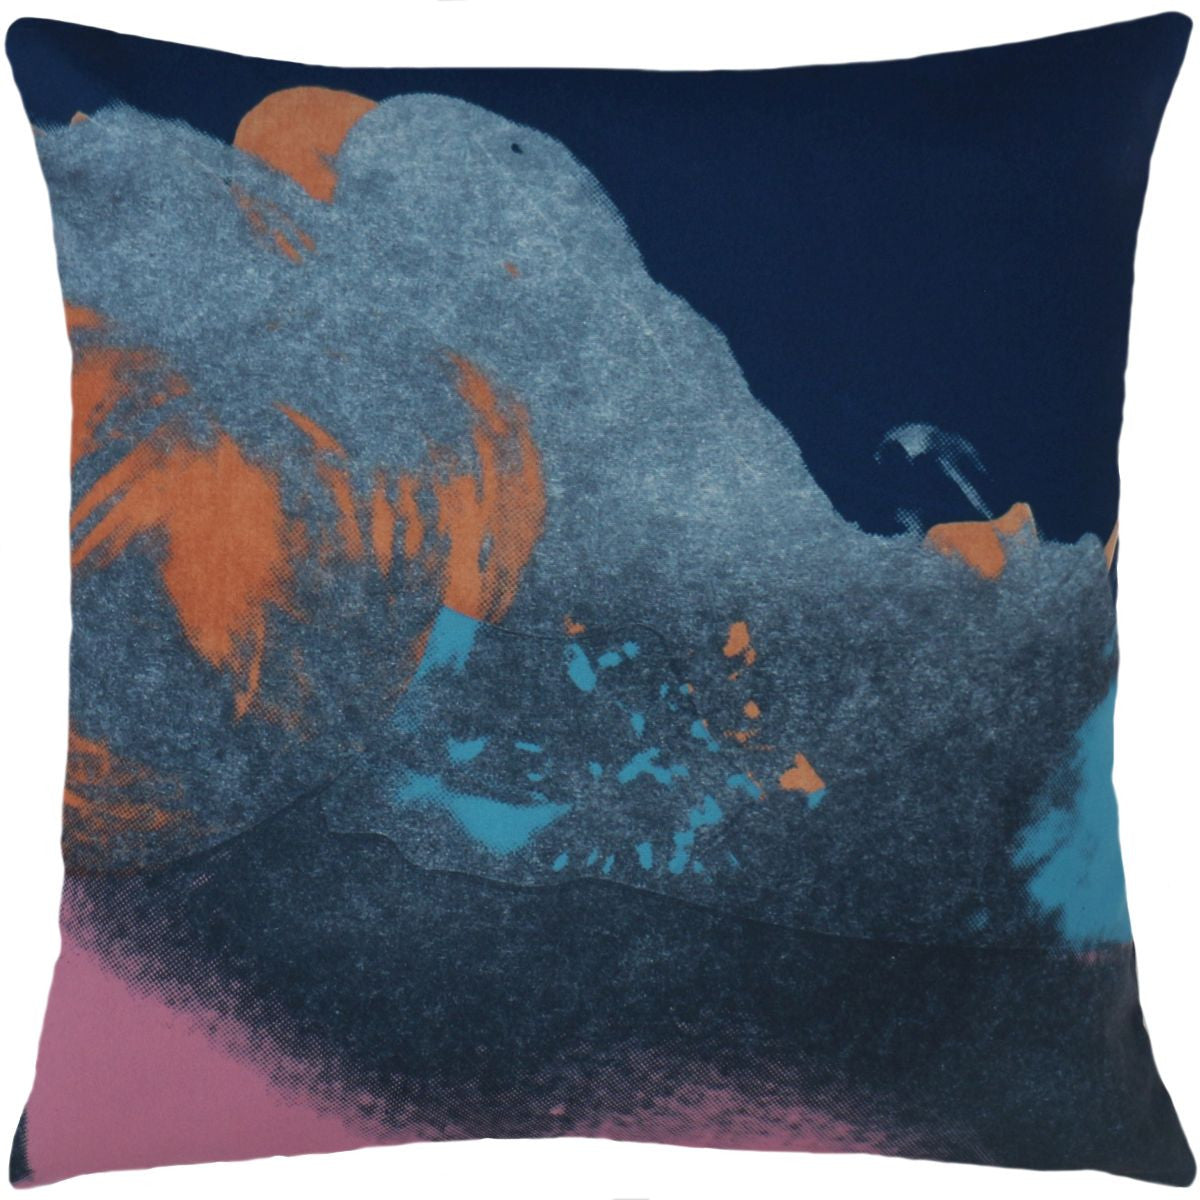 Andy Warhol Art Pillow in Pink & Blue design by Henzel Studio ...